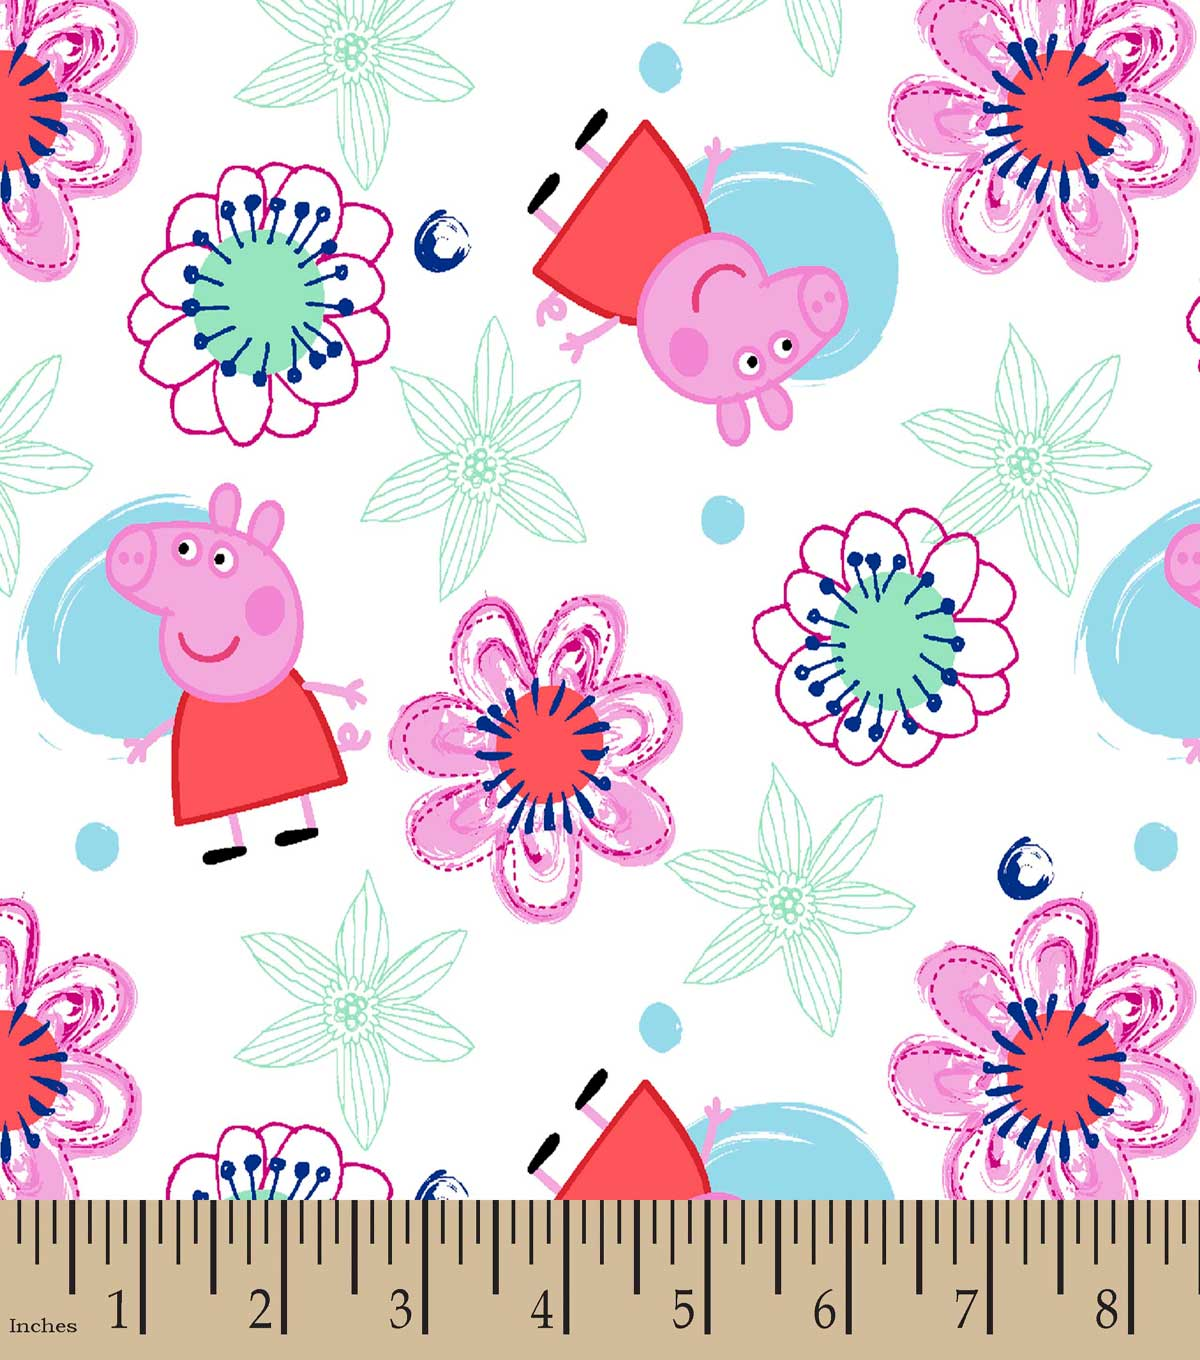 Peppa Pig Floral Print Fabric